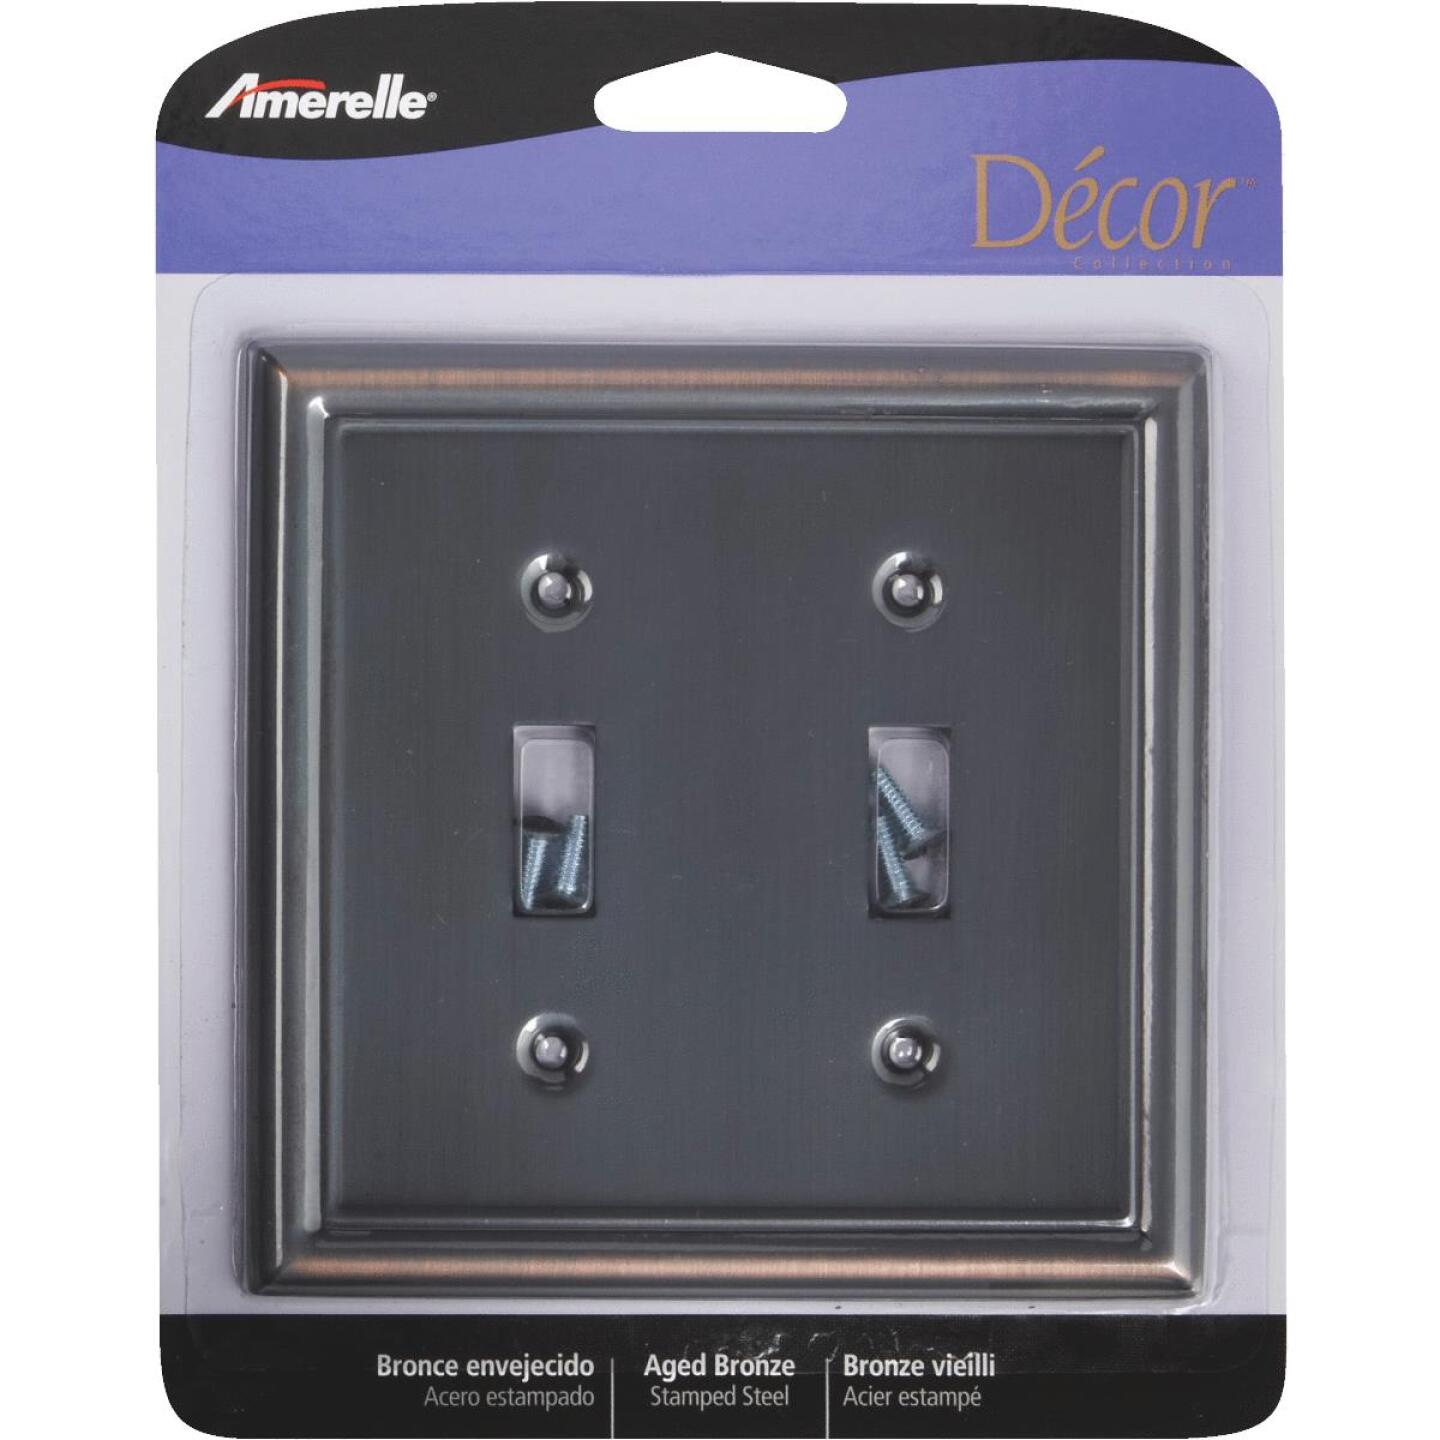 Amerelle Chelsea 2-Gang Stamped Steel Toggle Switch Wall Plate, Aged Bronze Image 2